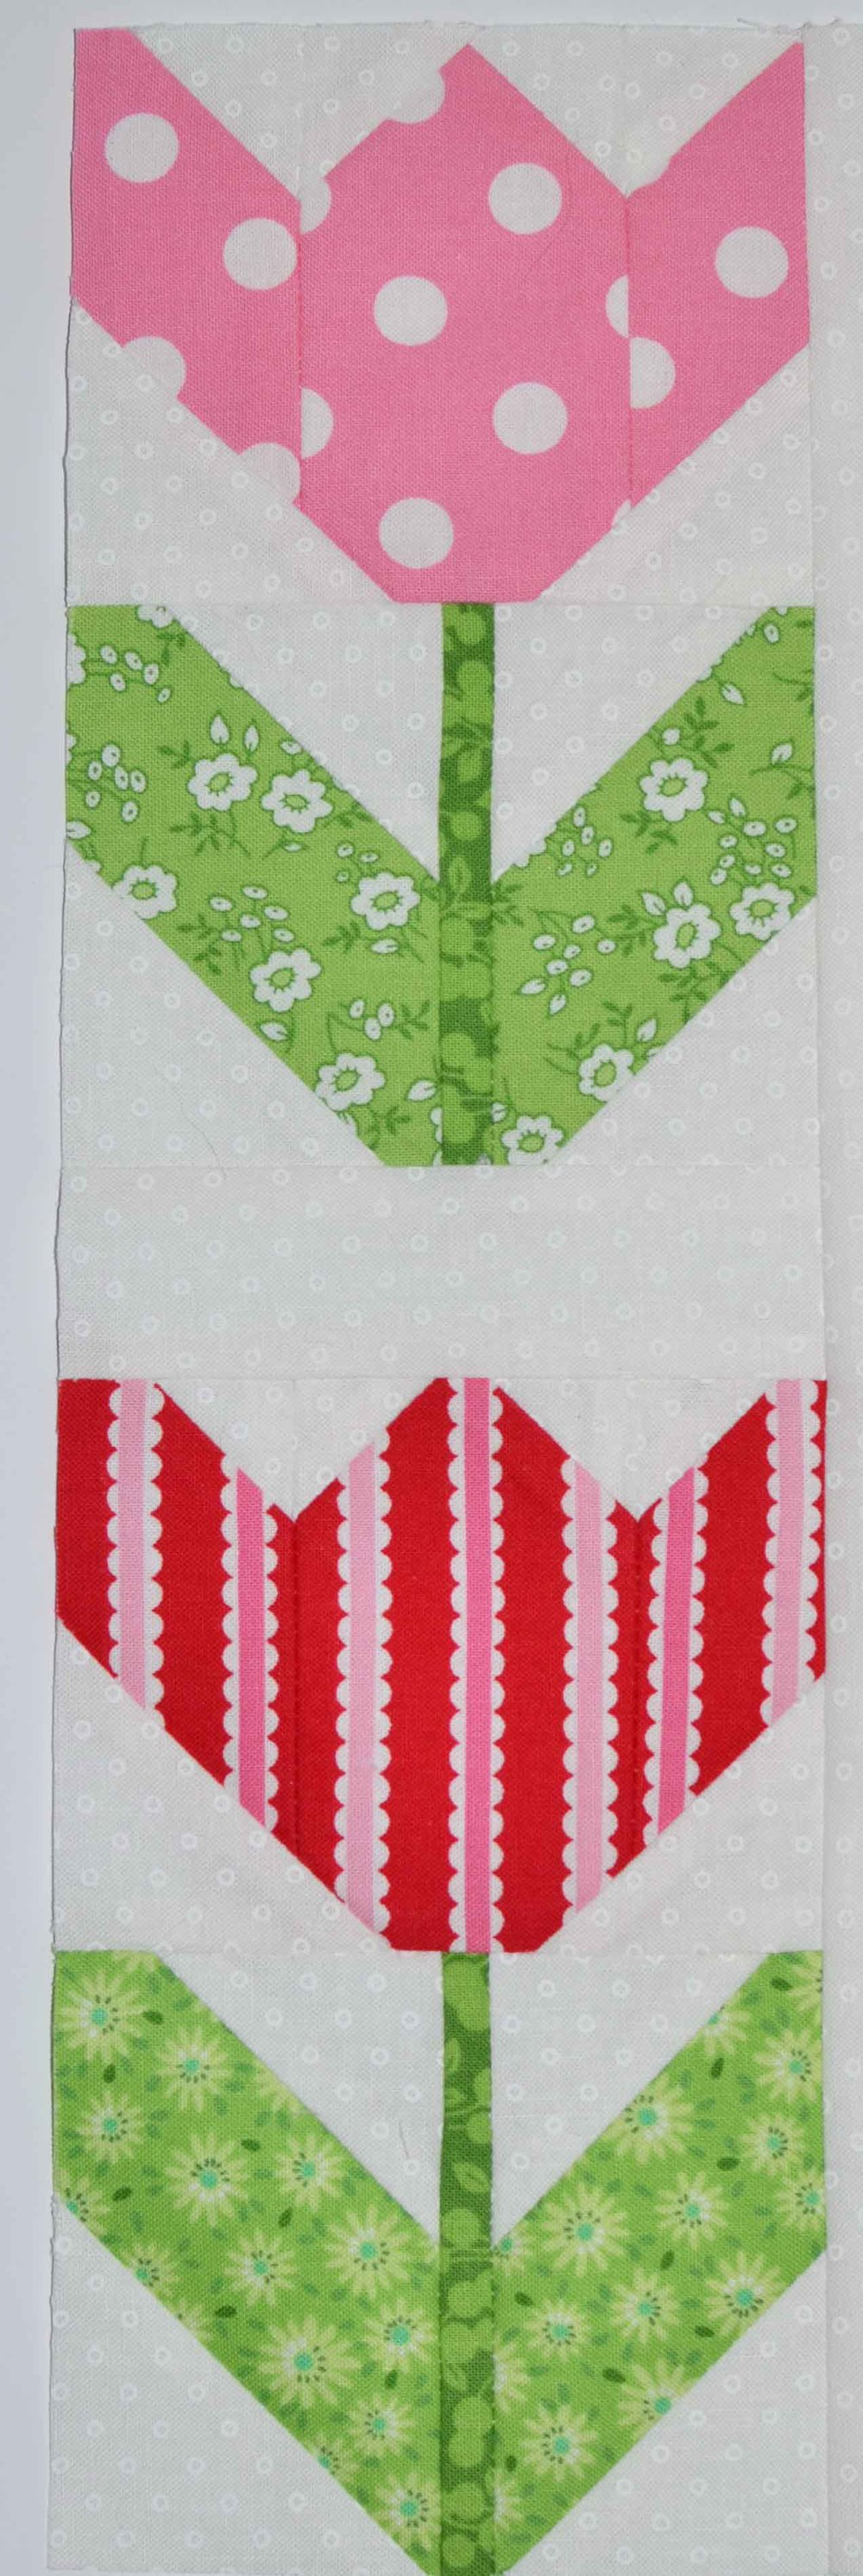 quilty fun spring tulips 014.JPG